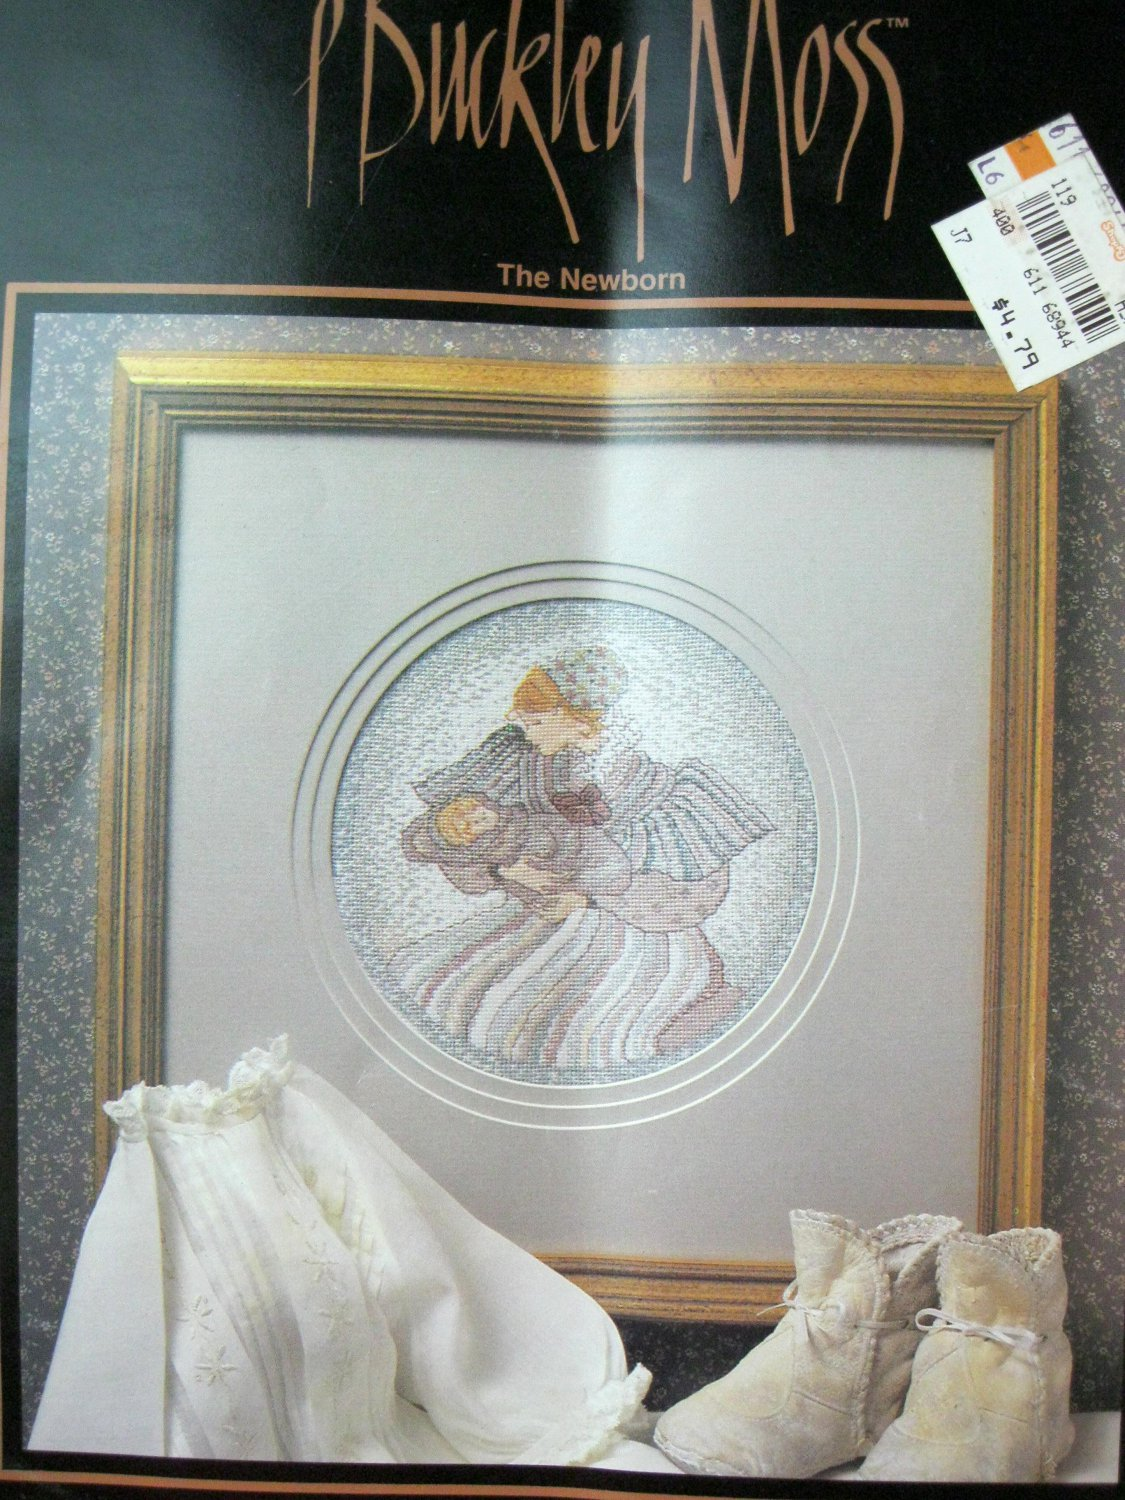 P Buckley Moss : The Newborn (Leaflet 110) Cross Stitch